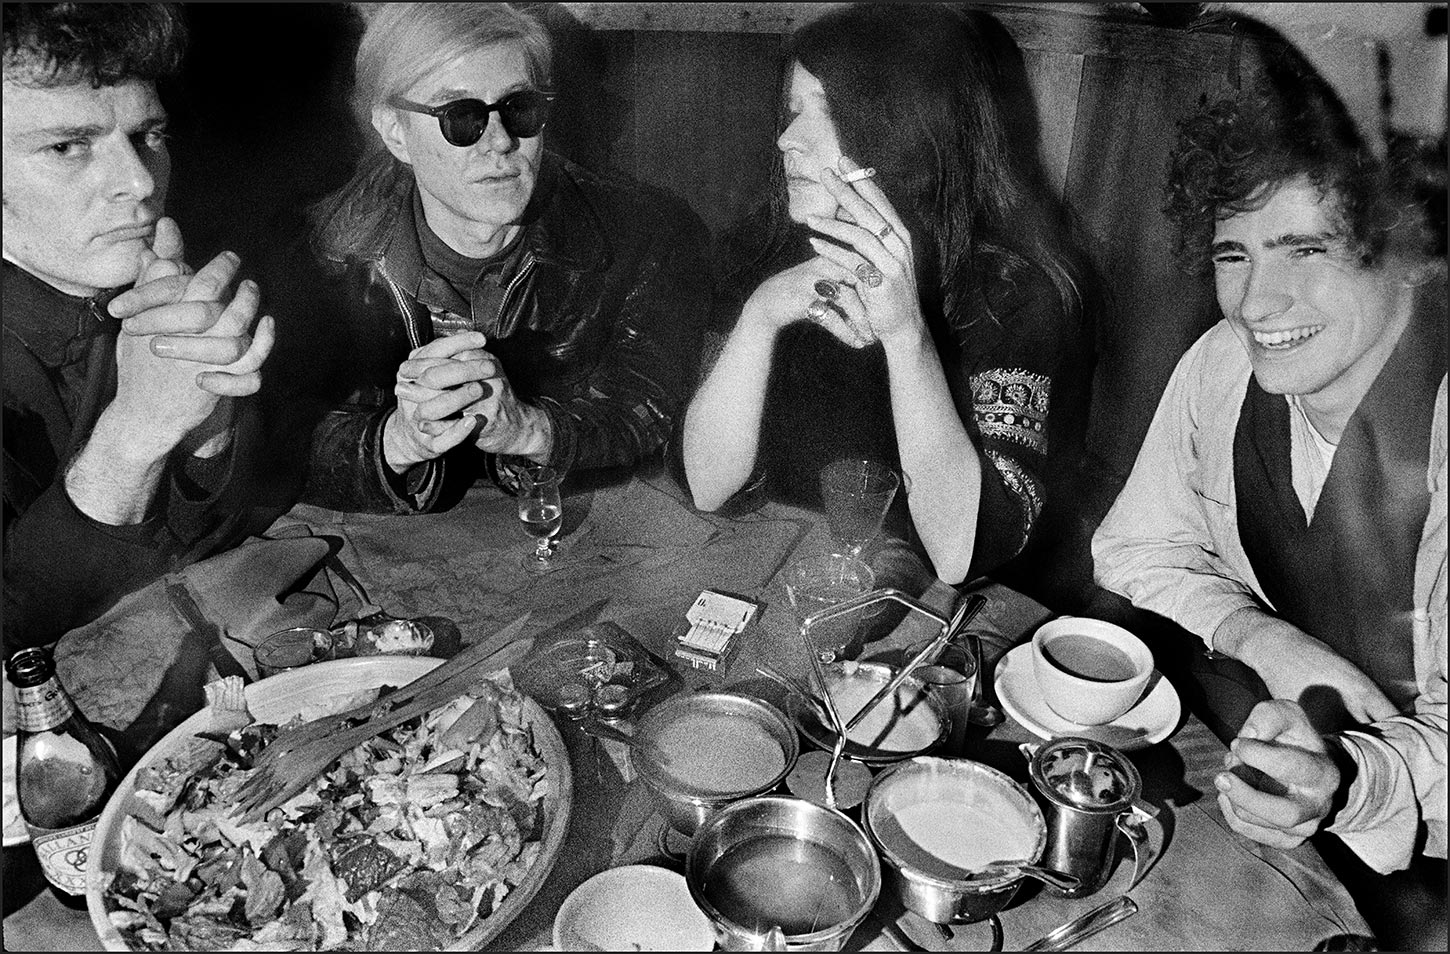 Paul Morissey, Andy Warhol, Janis Joplin, and Tim Buckley at Max's Kansas City. New York City. 1968.